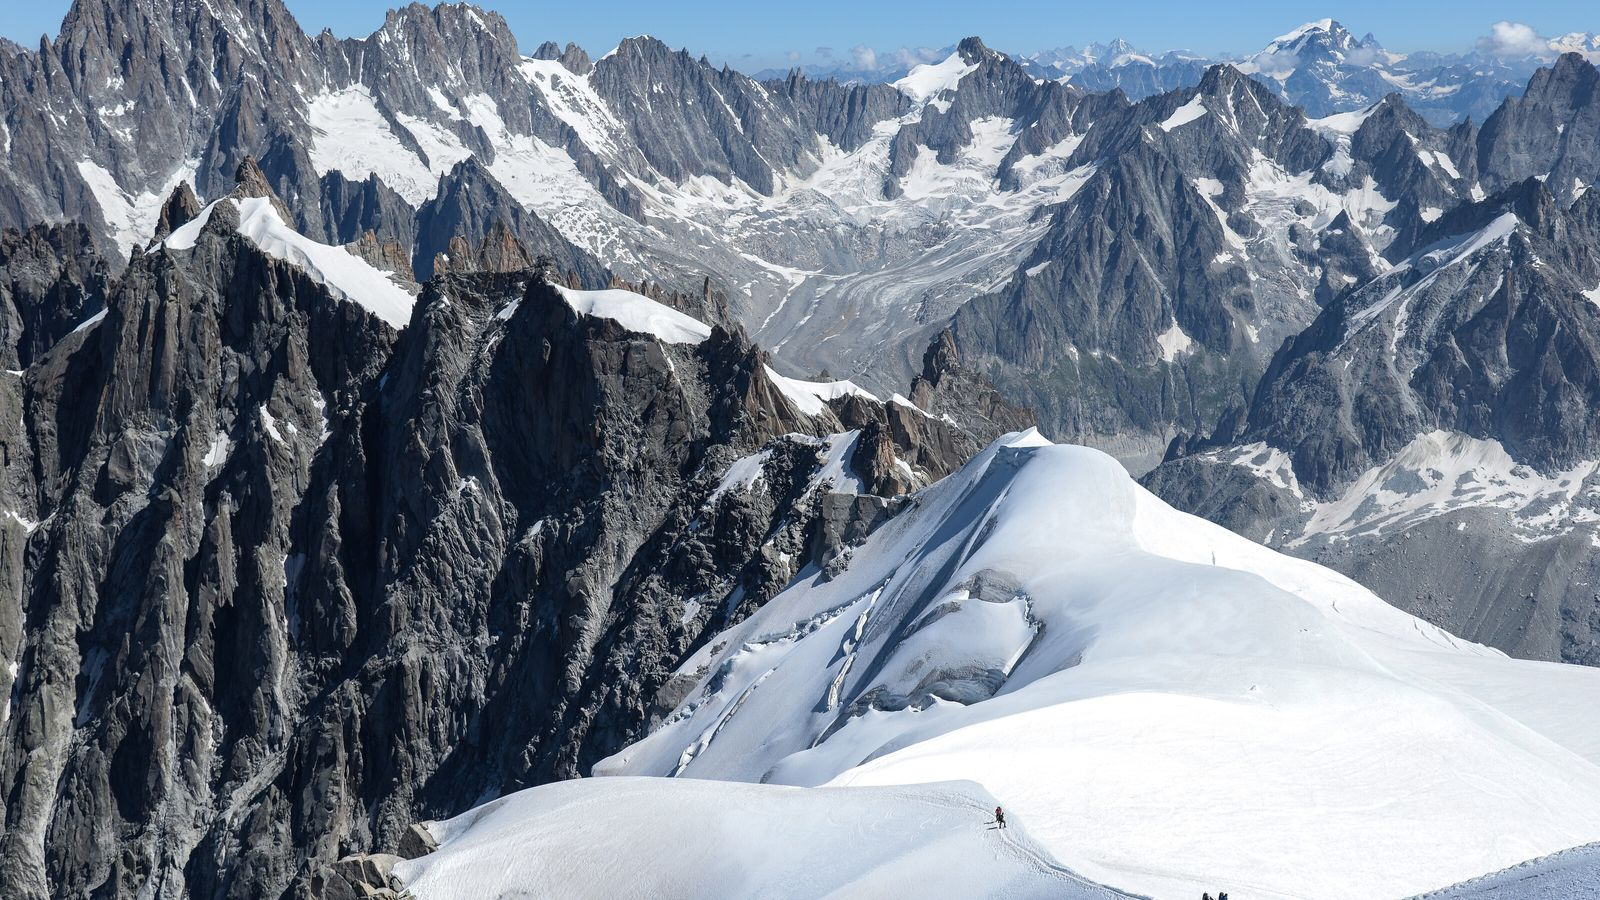 Snow-capped mountains in France's Chamonix-Mont-Blanc Valley.